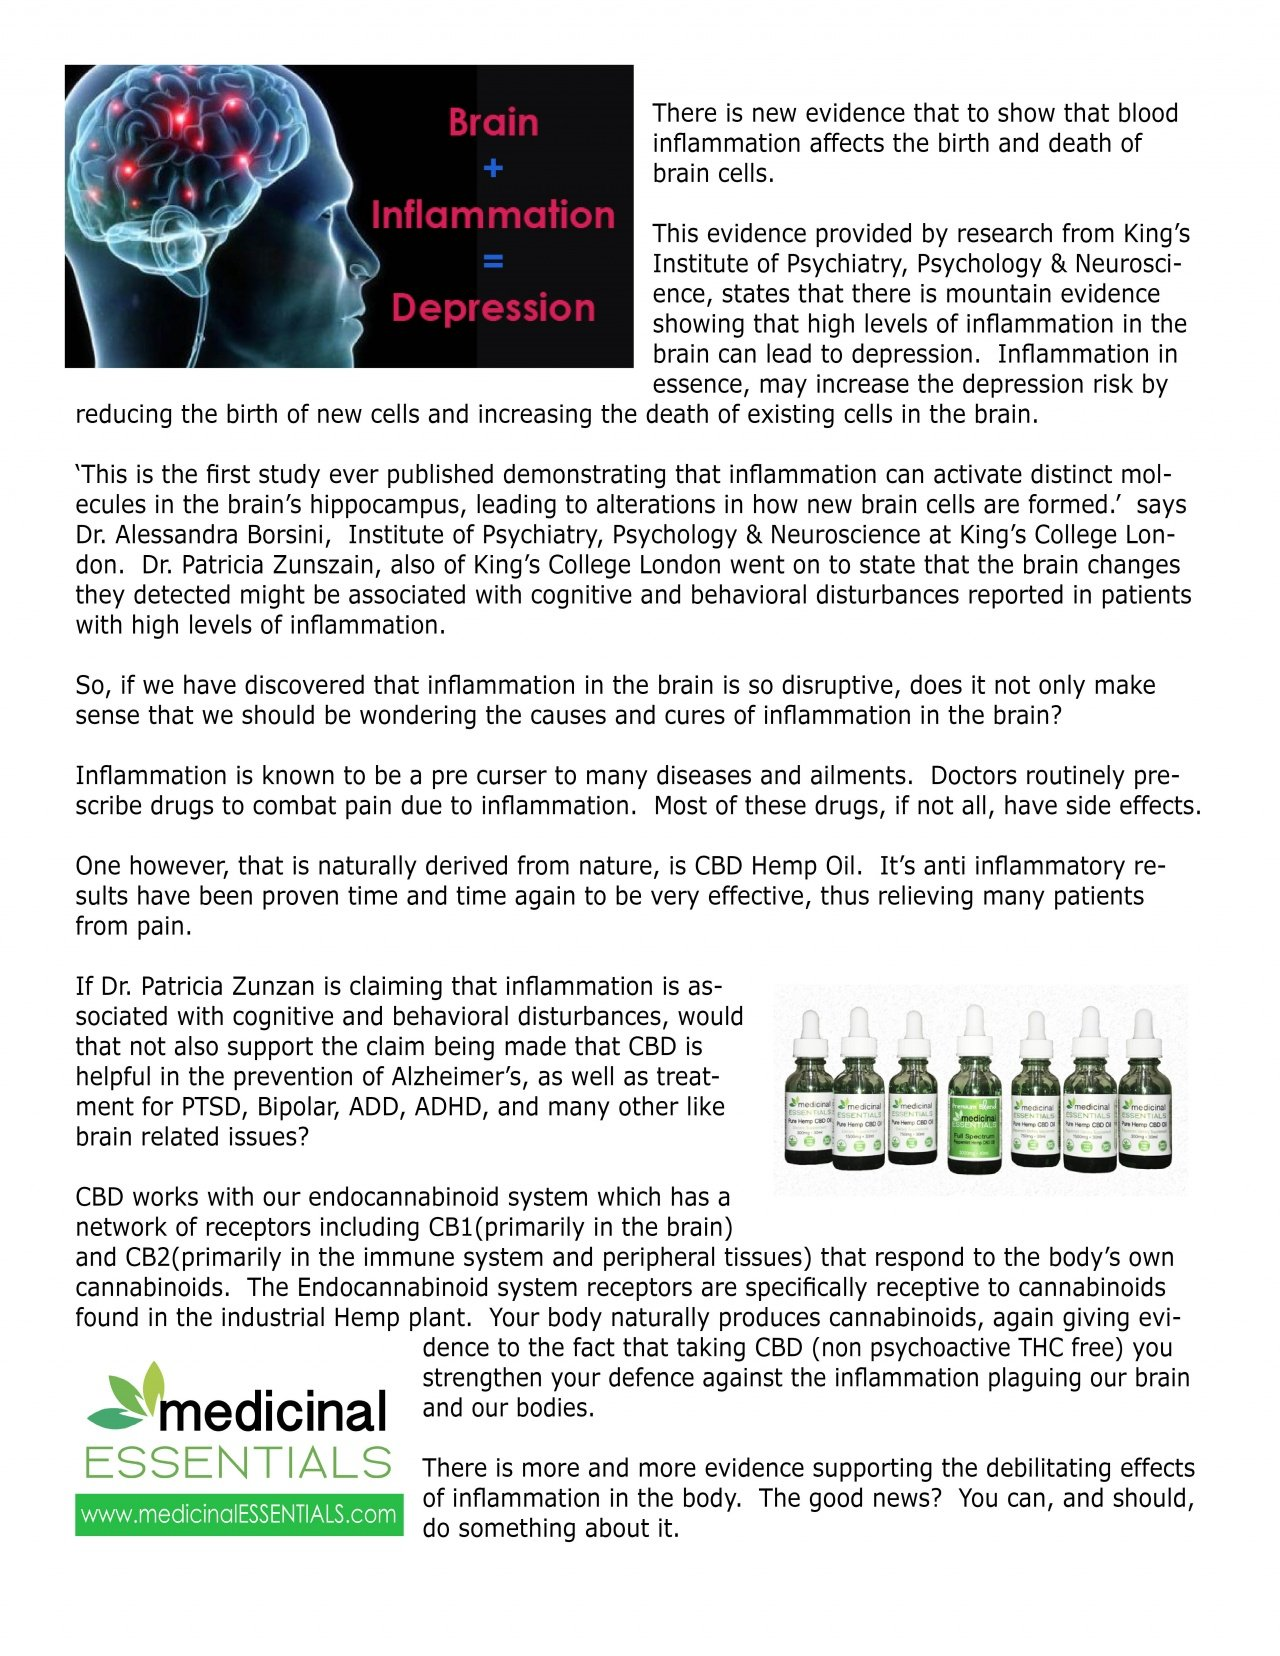 medicinalEssentials - Brain Inflammation Can Cause Depression